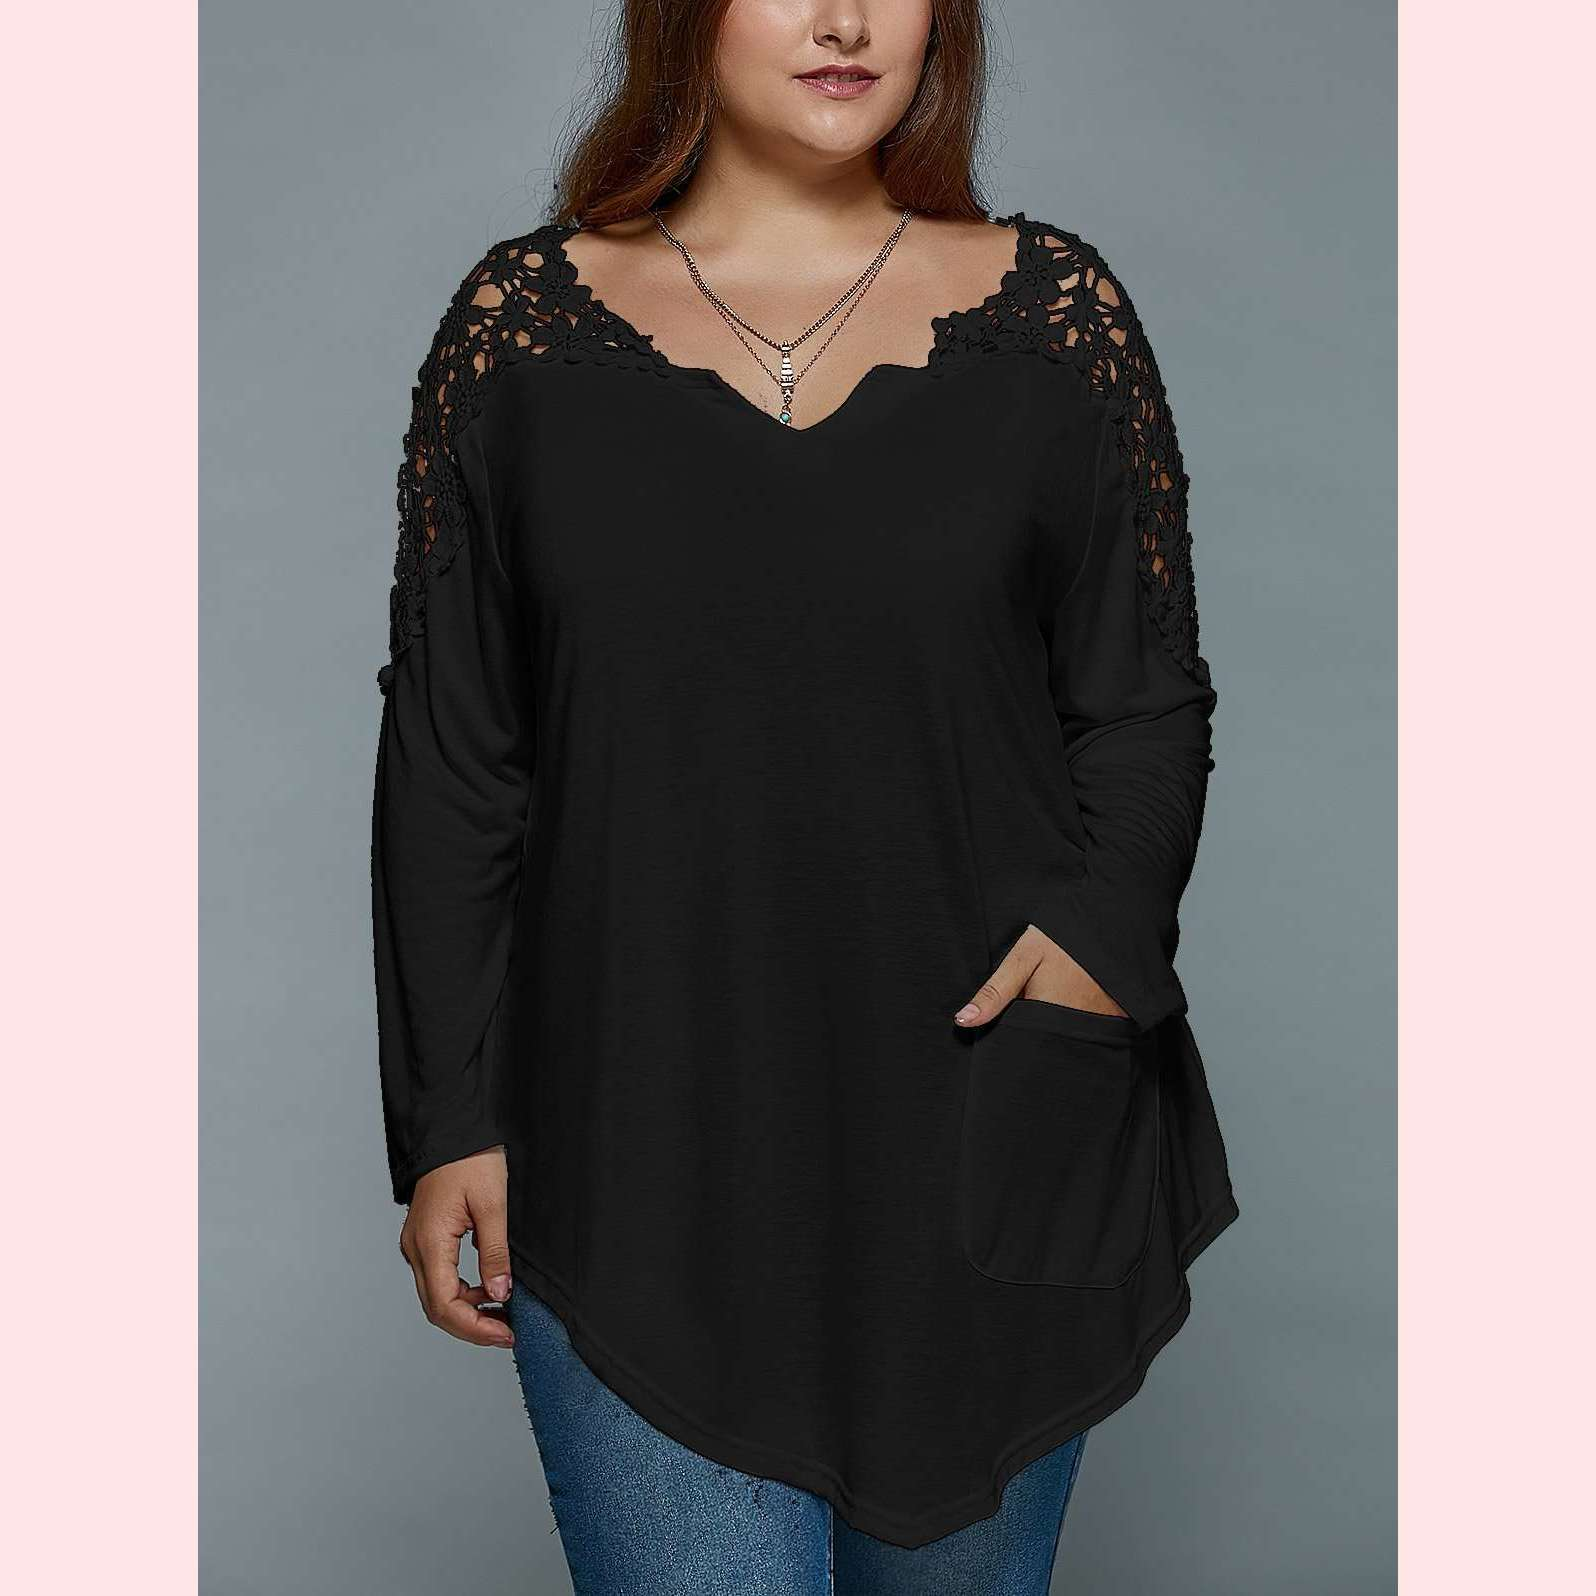 Sweet Daisy Top,Blissful Chic,Black / XL